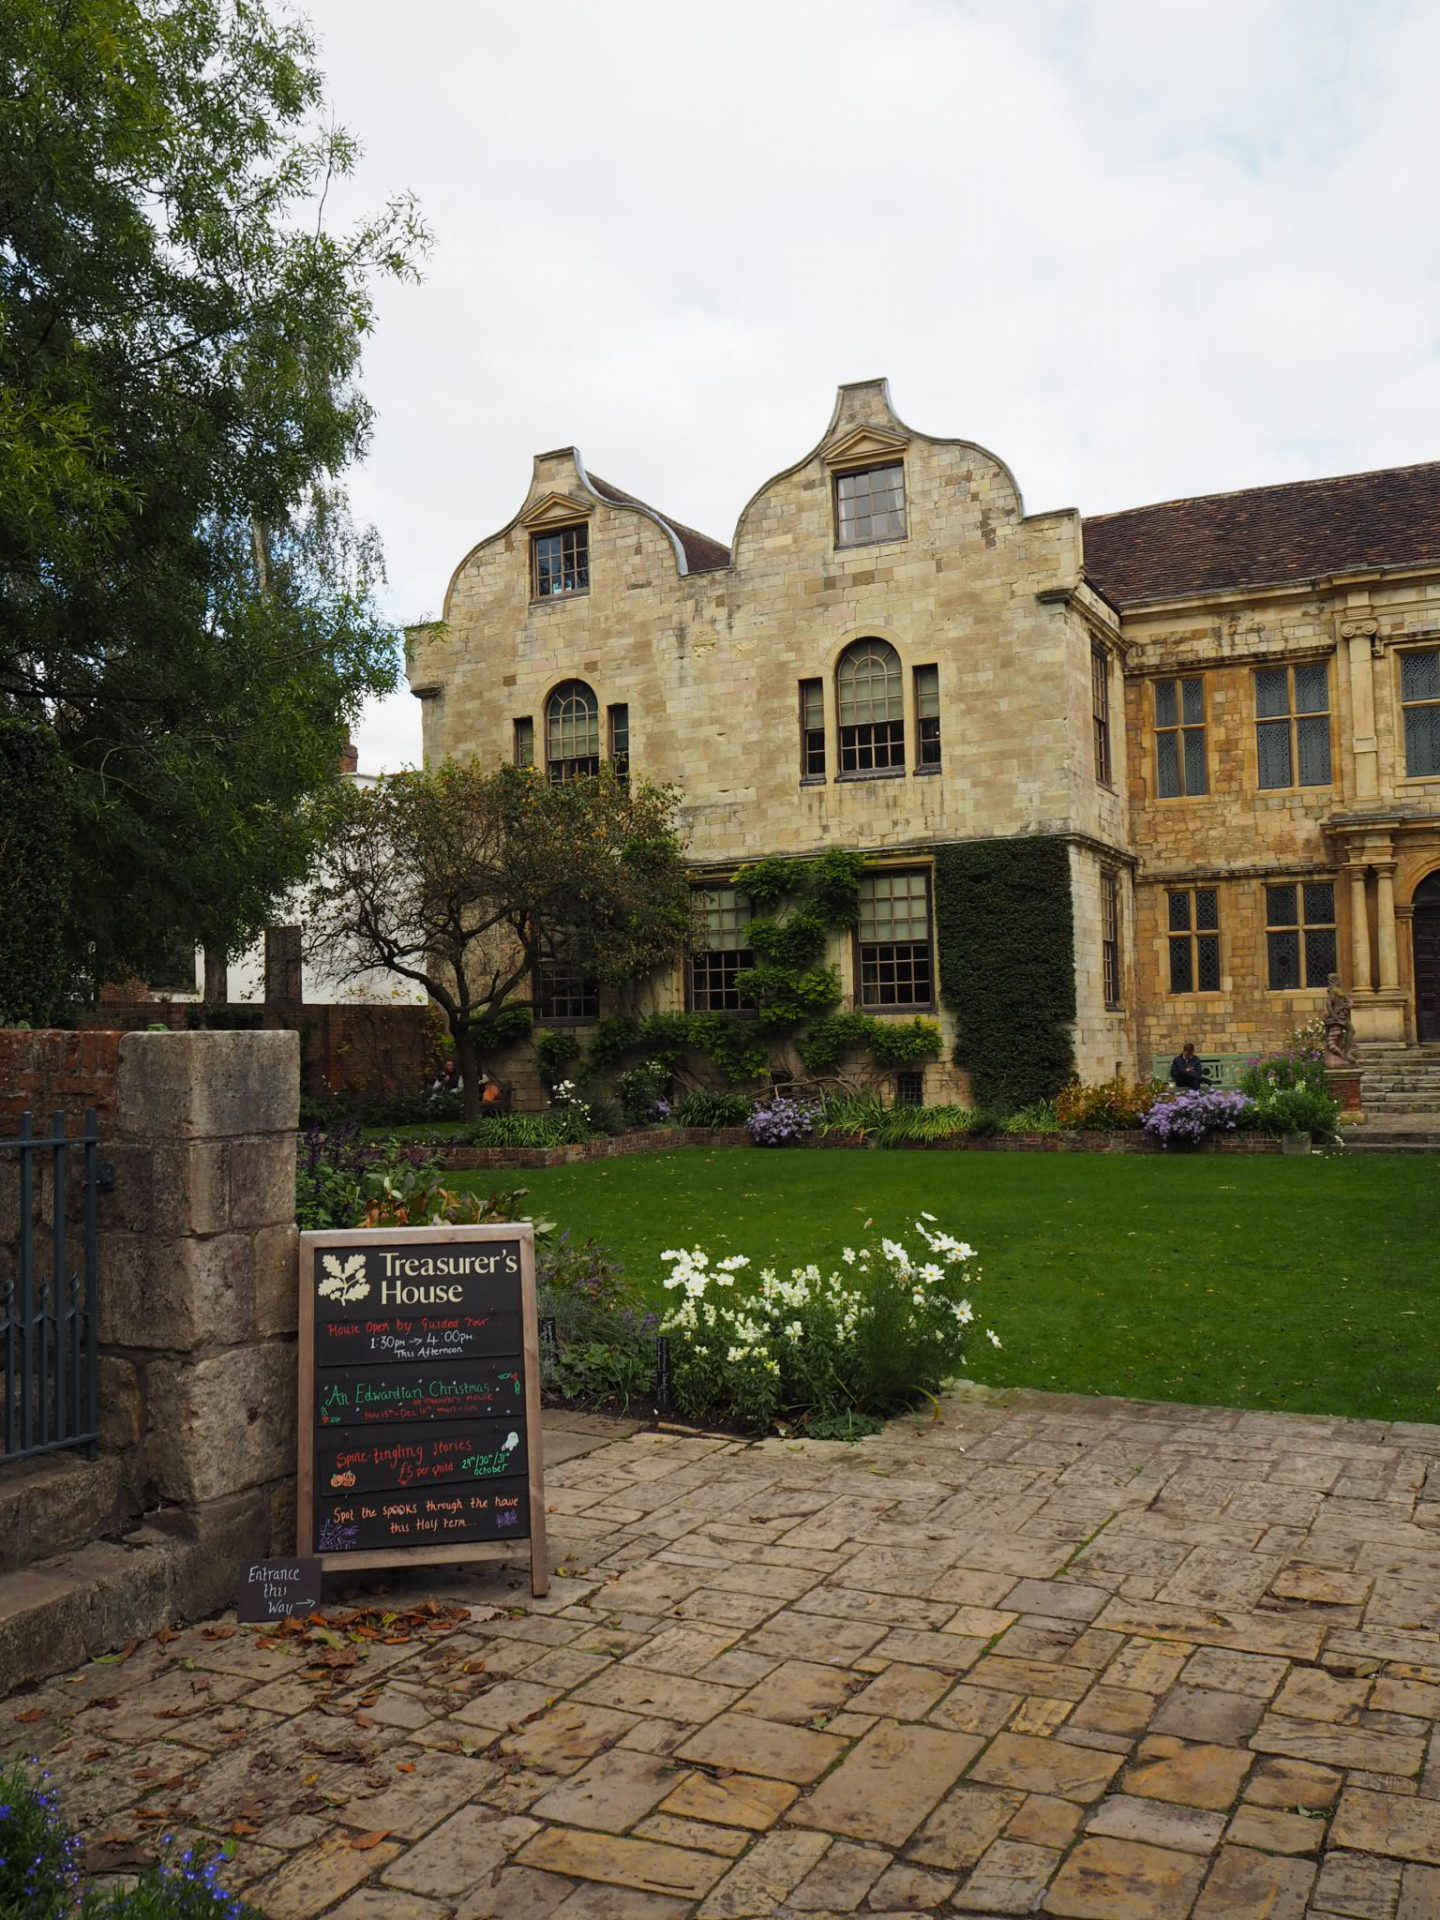 history guide to york - treasurer's house